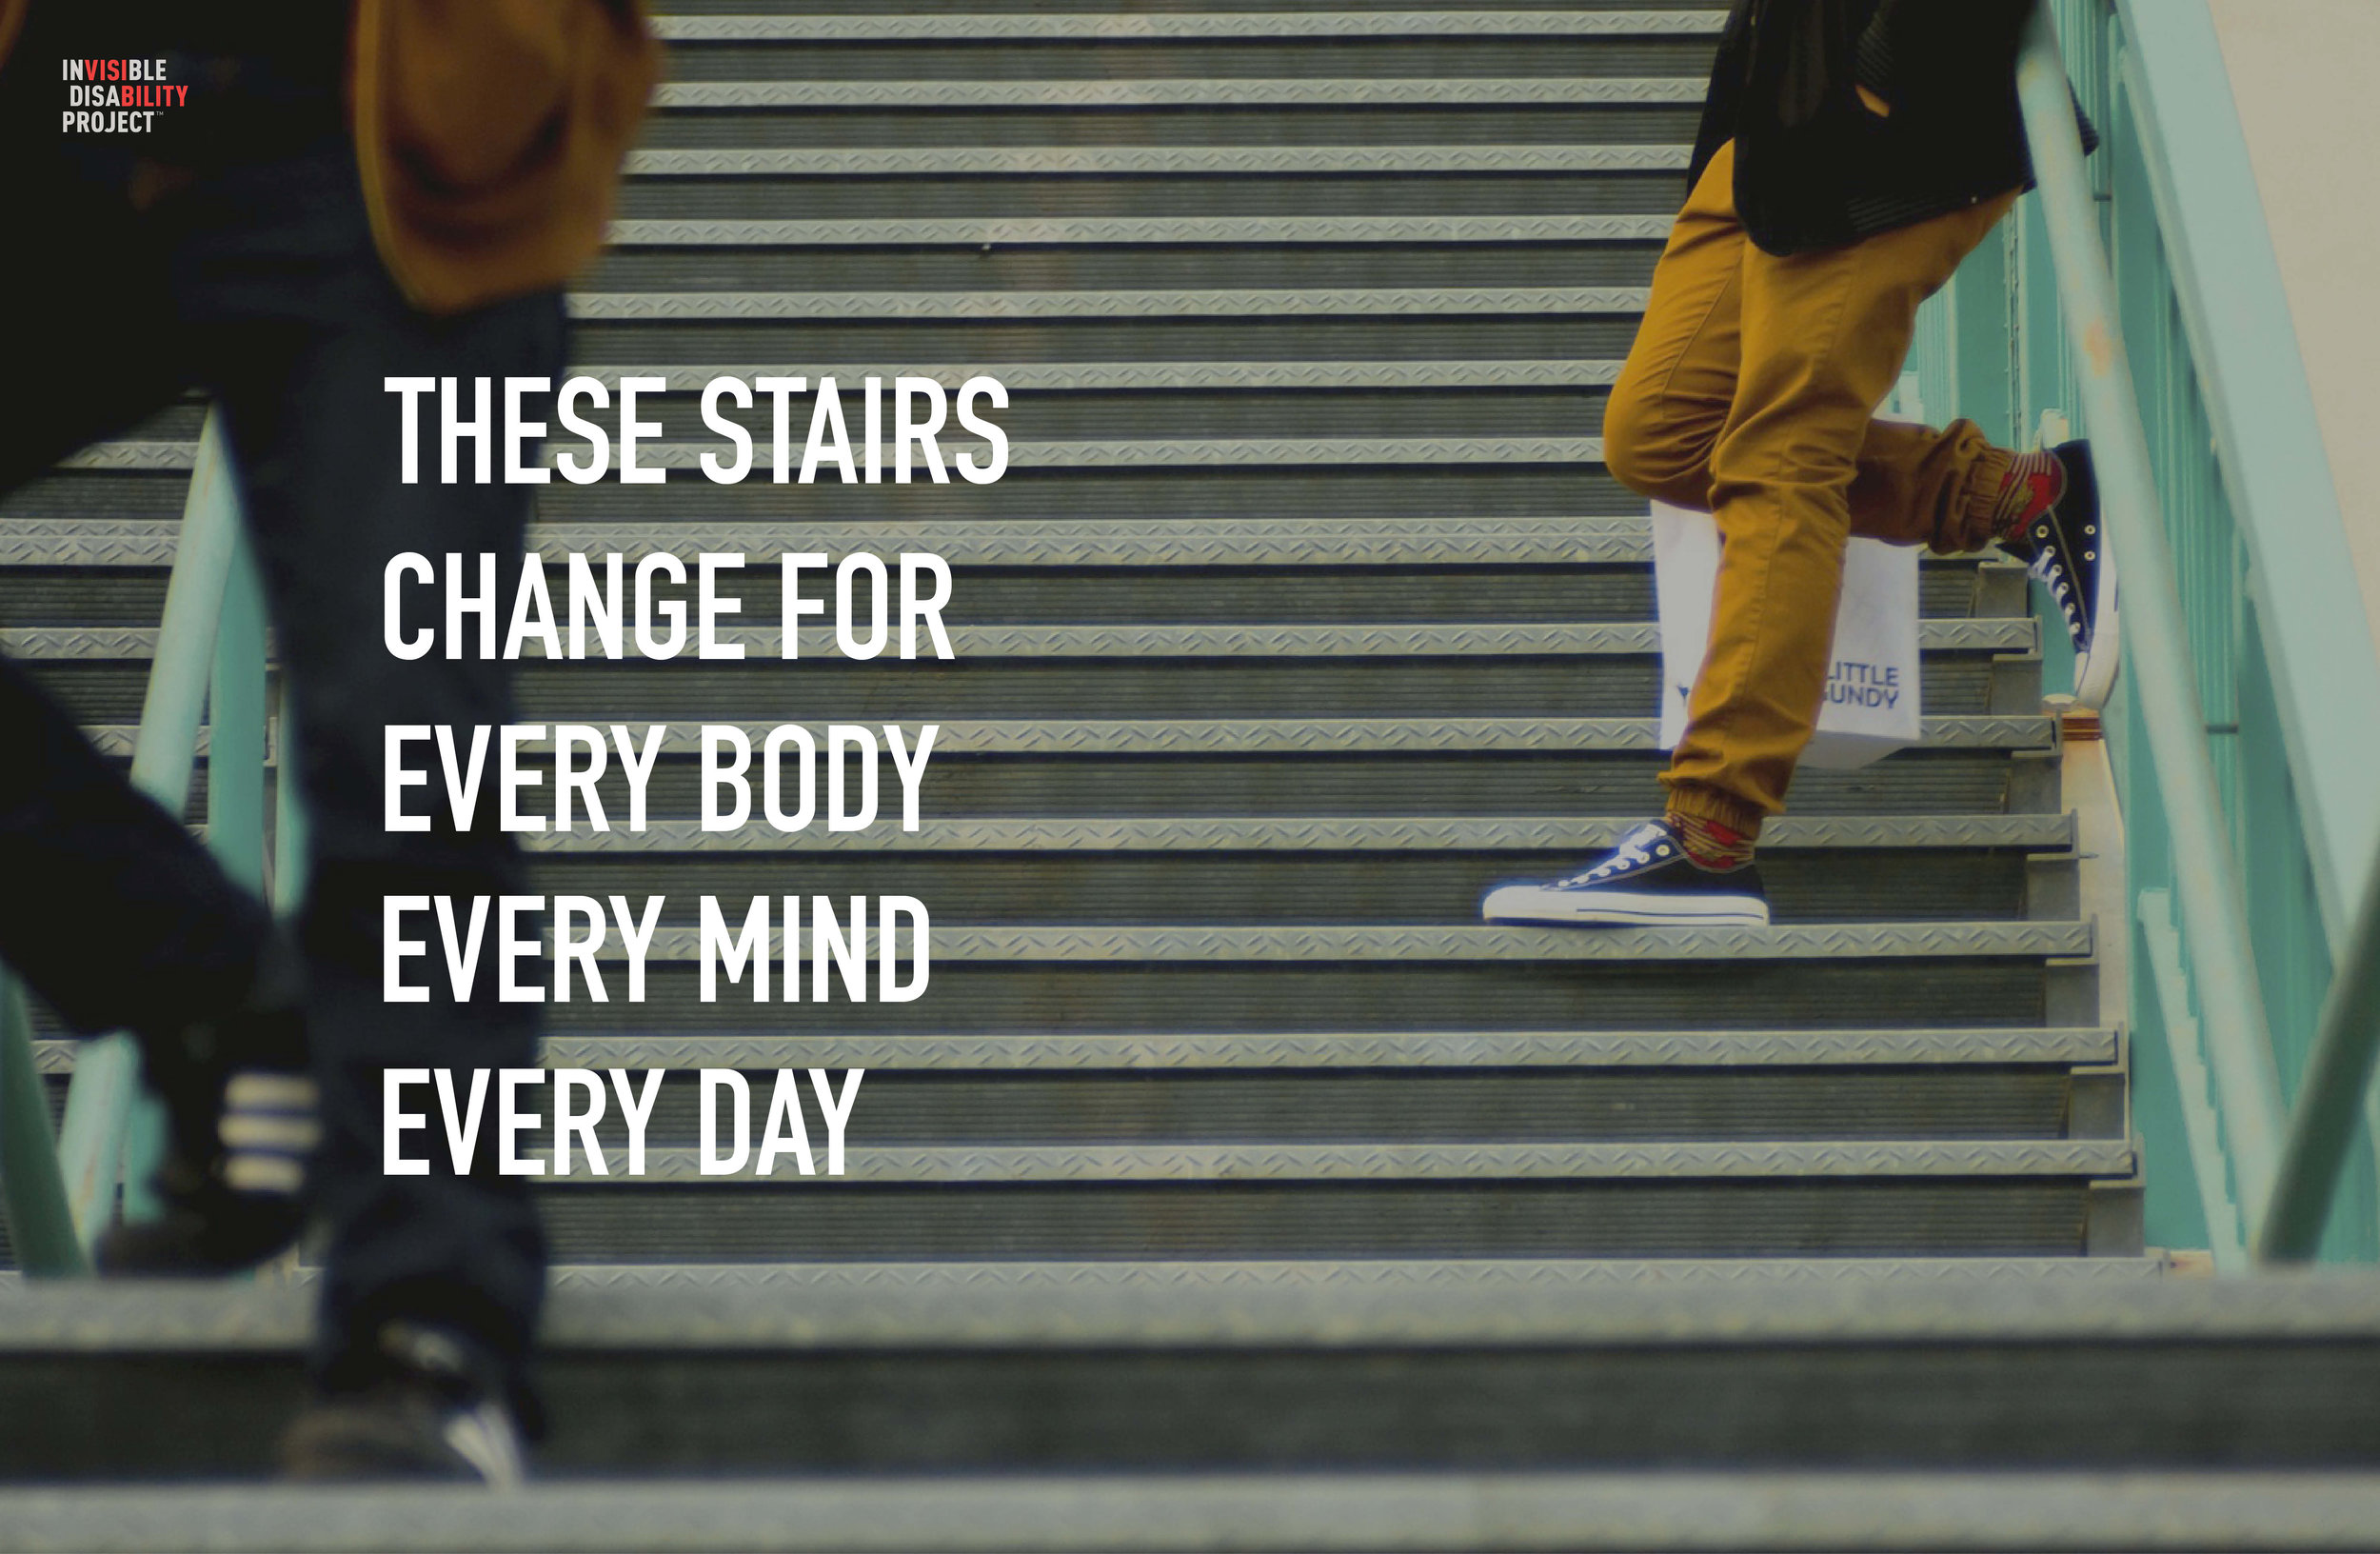 These stairs change for every body and every mind, every day.